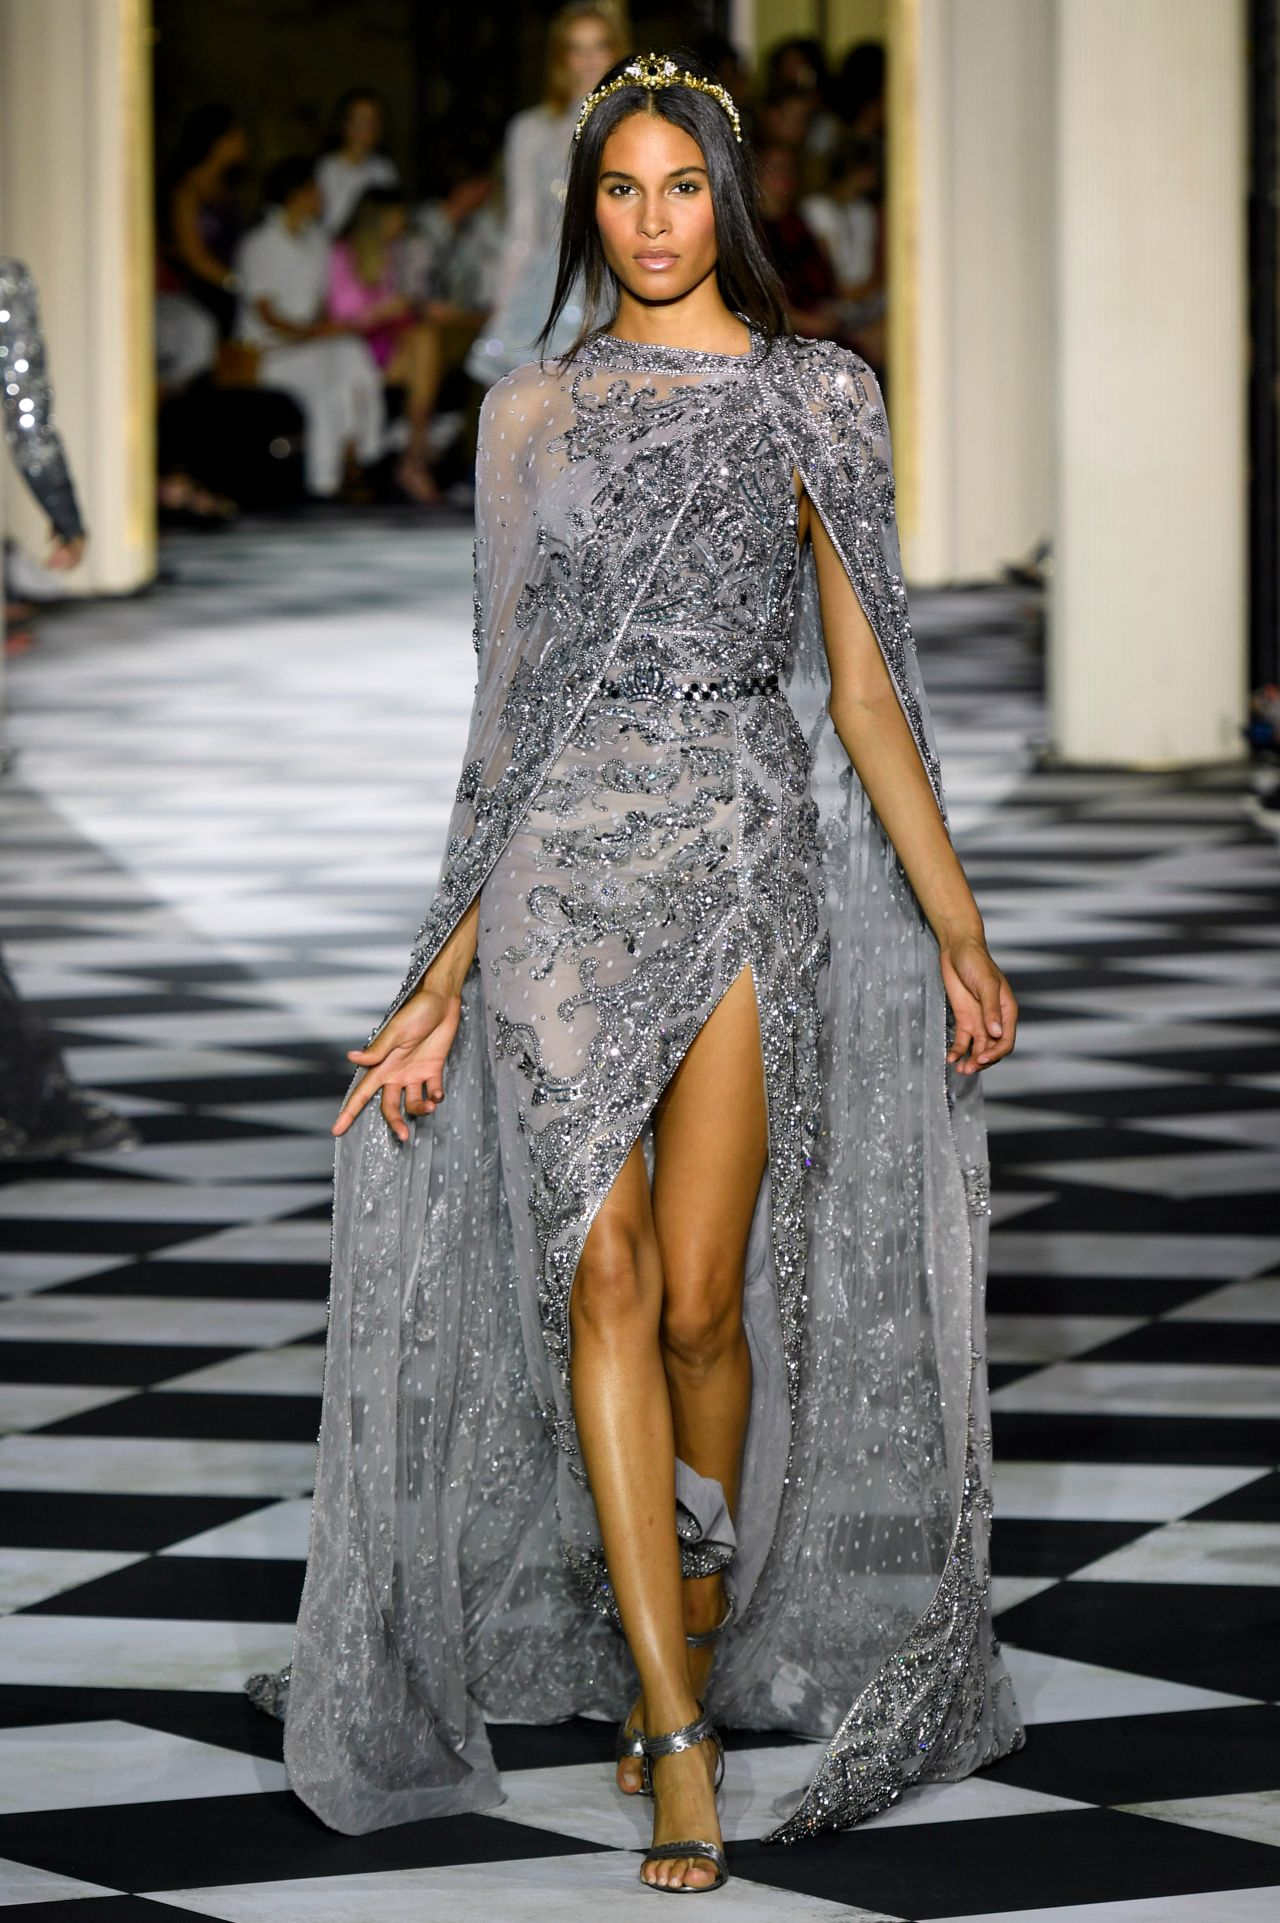 Cindy Bruna Walking Zuhair Murad Show Pfw In Paris 07 04 2018